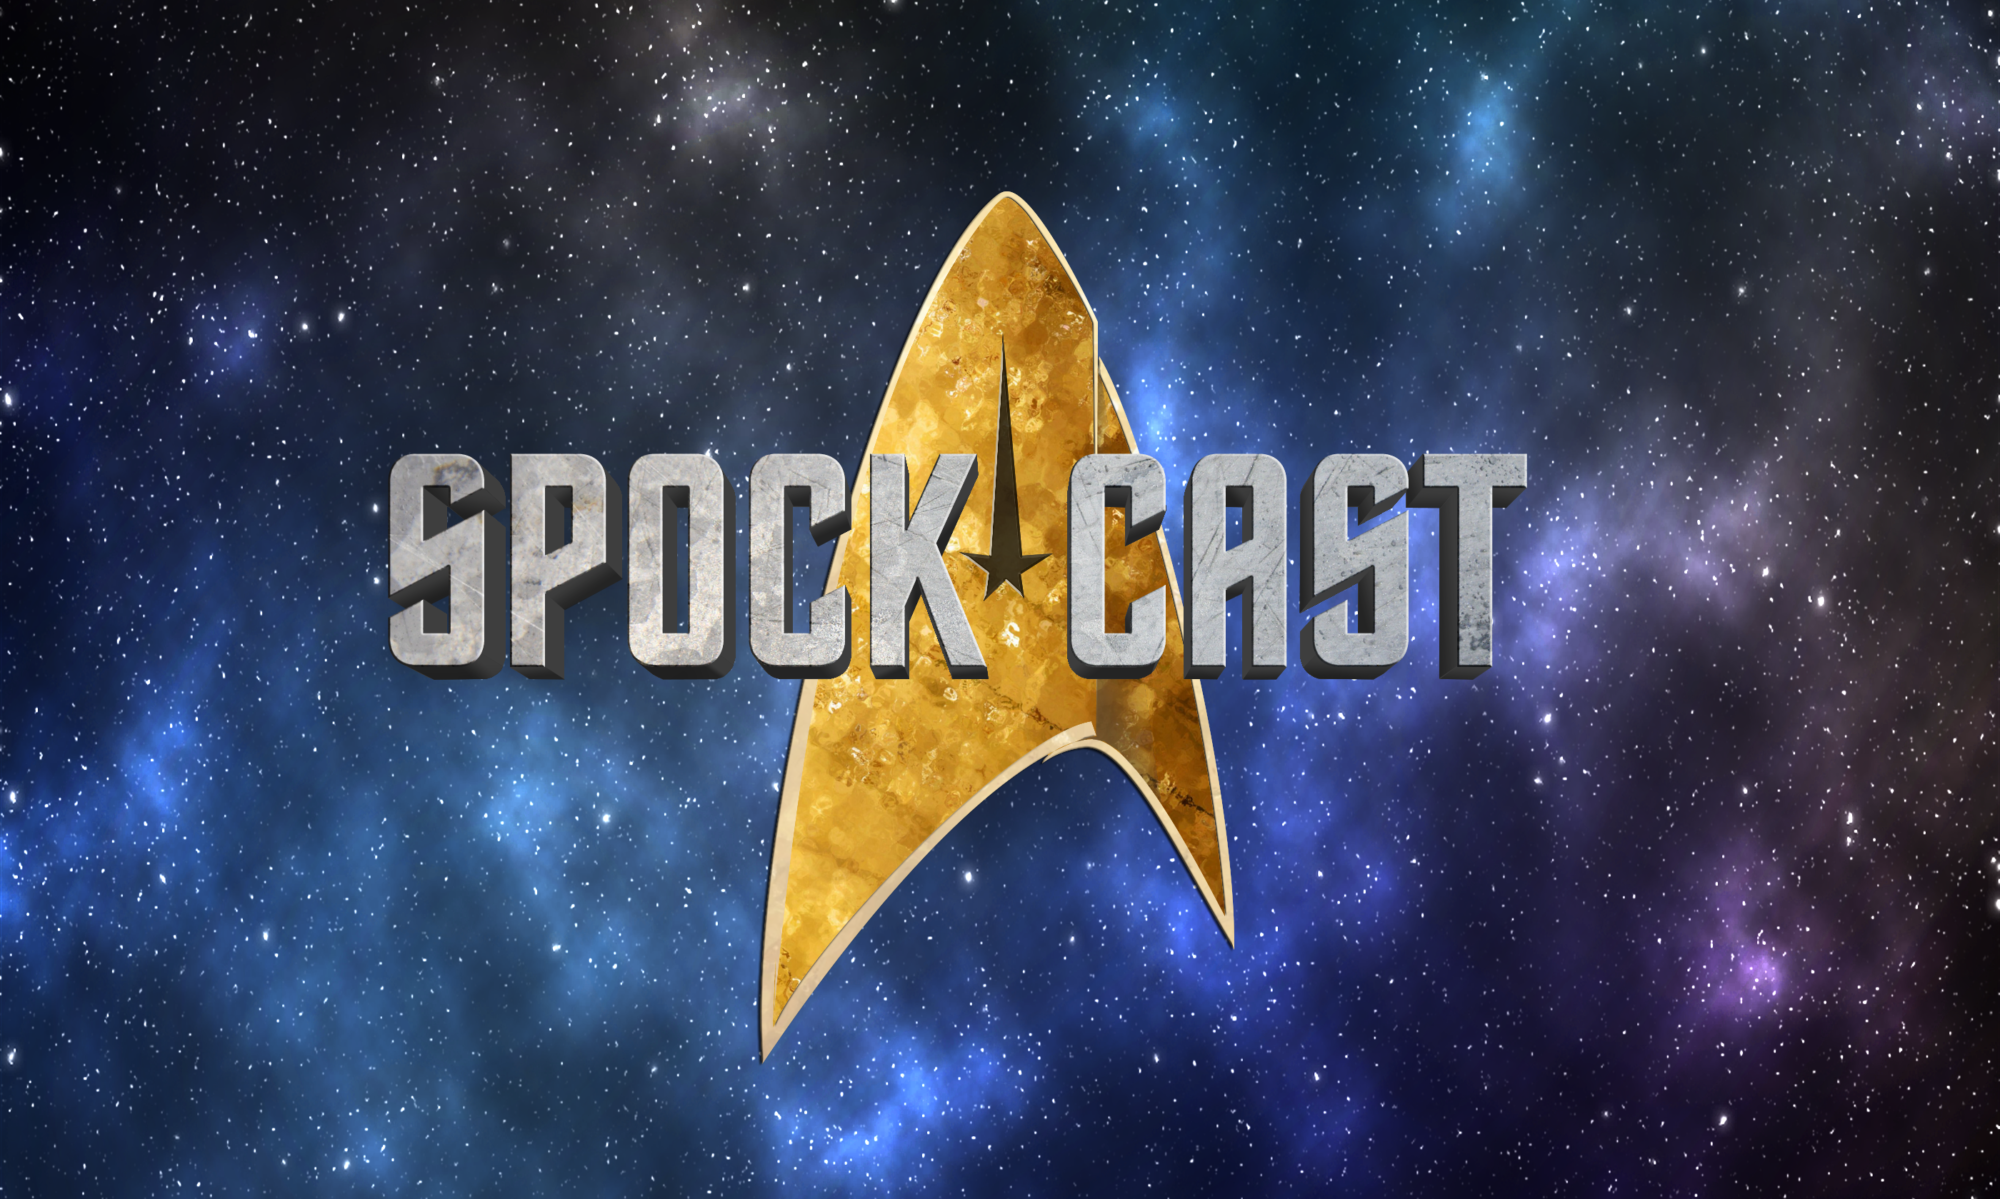 Spock Cast podcast